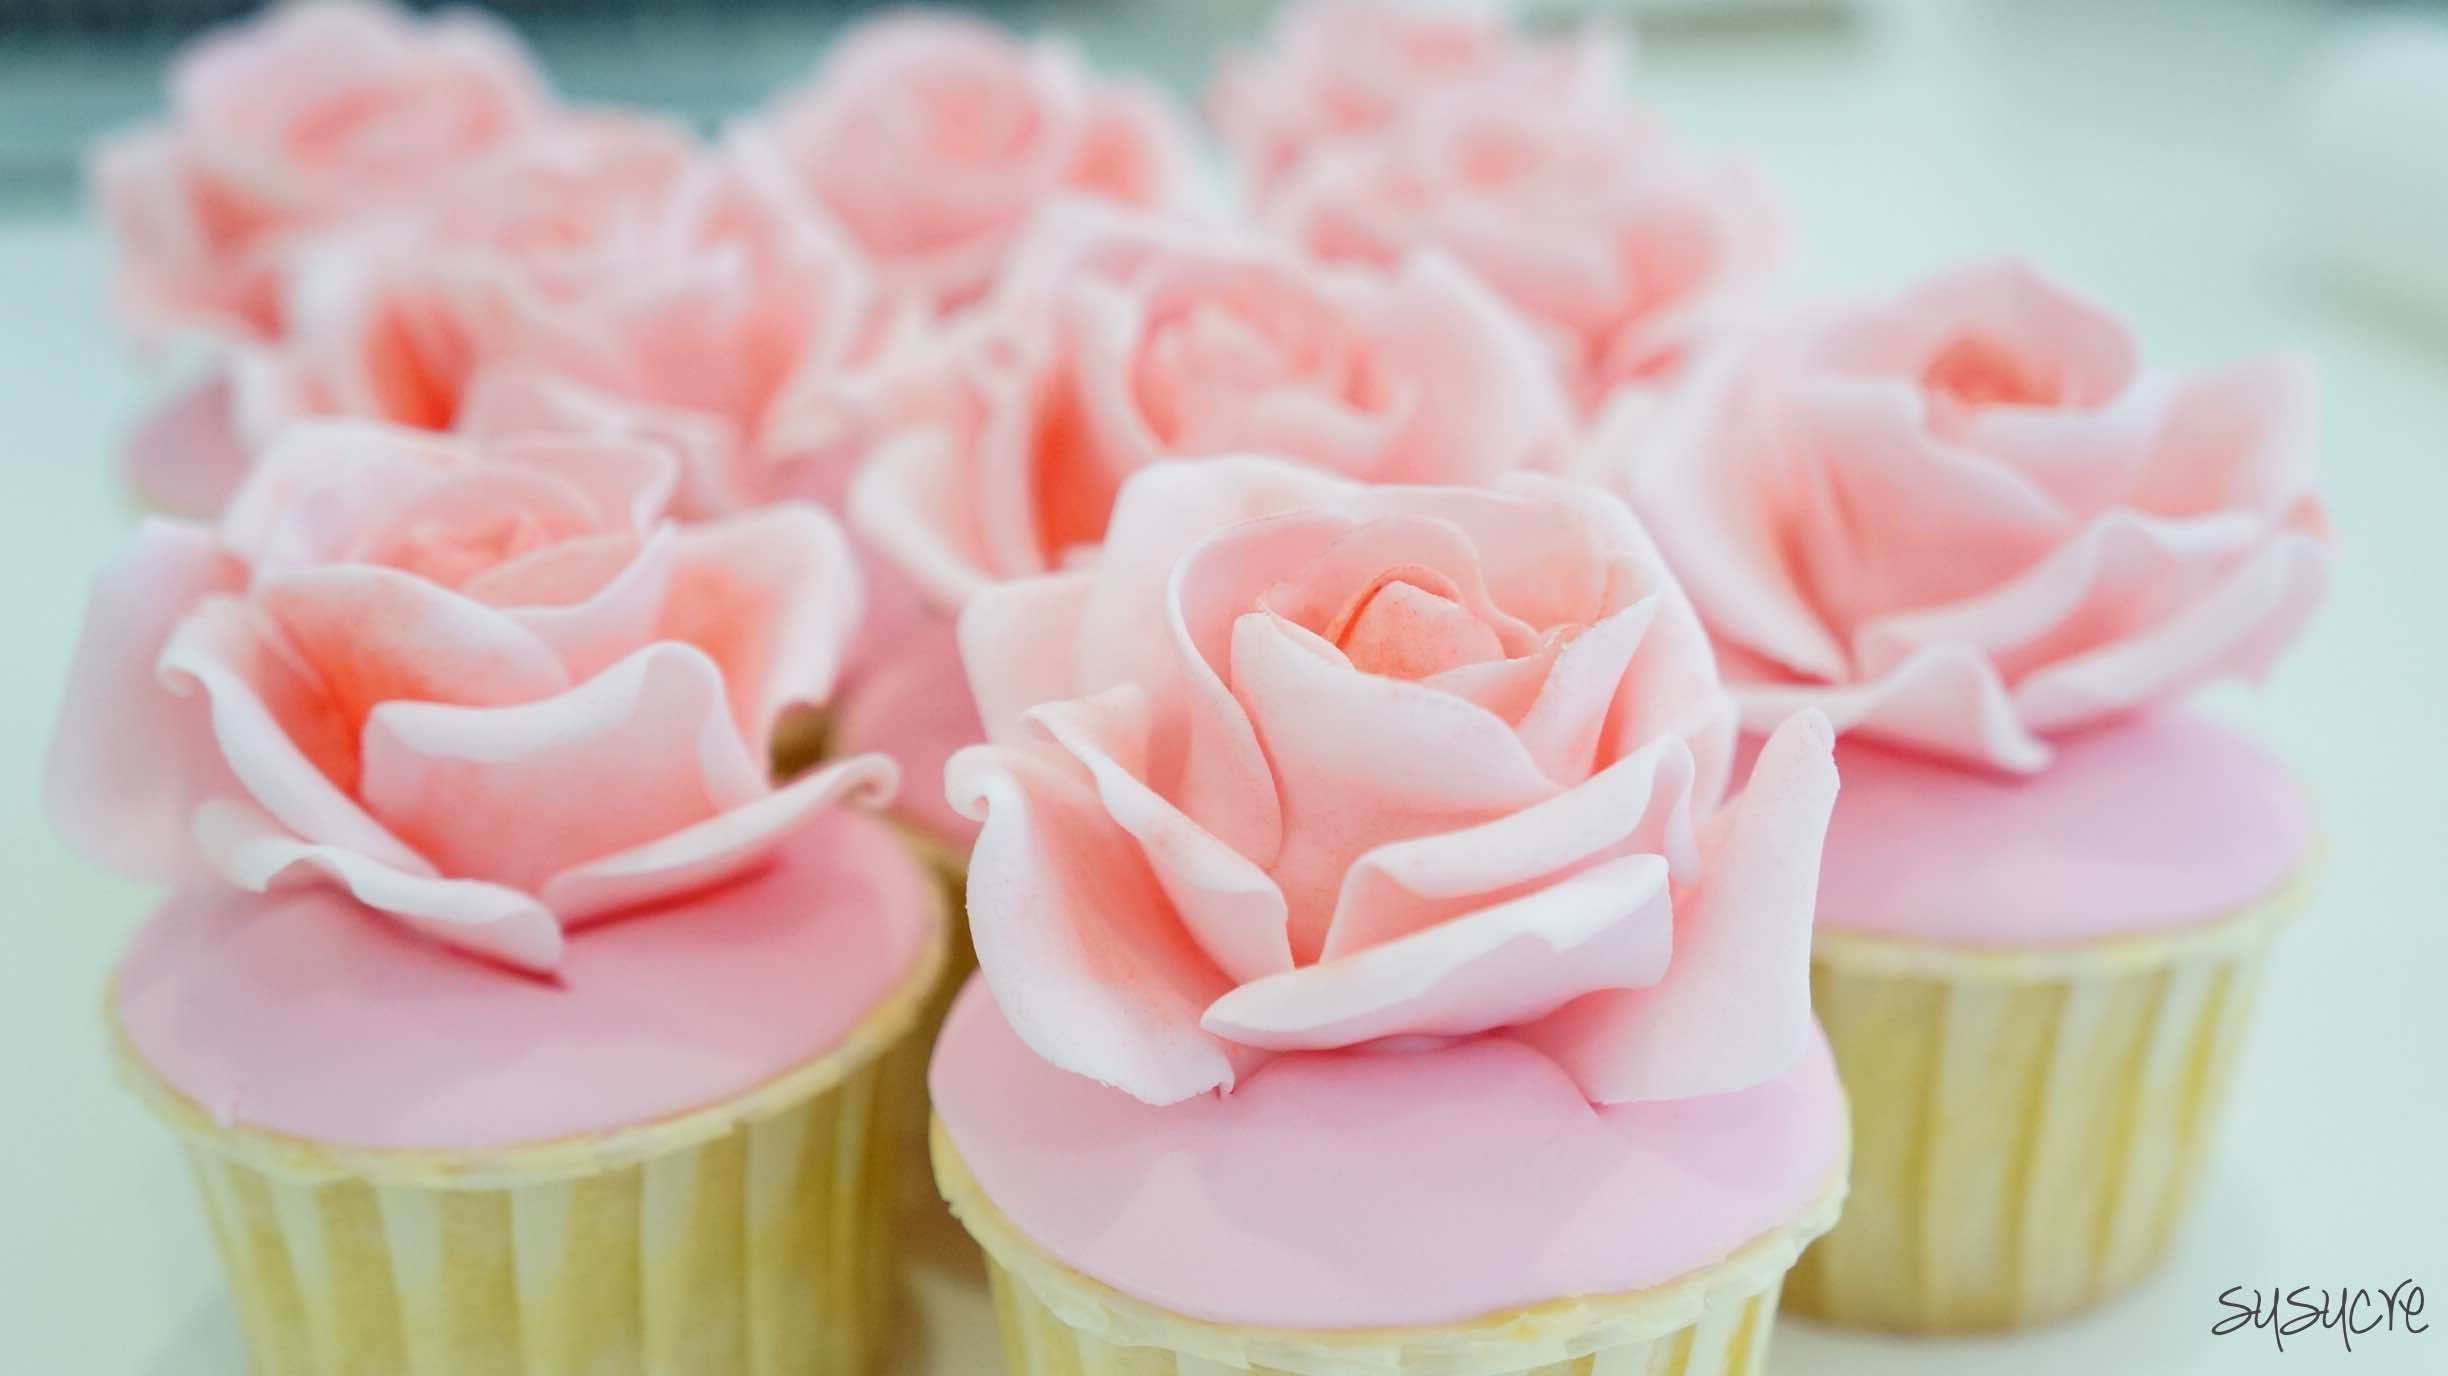 Wedding Cupcakes by Susucre Pte Ltd | Bridestory.com